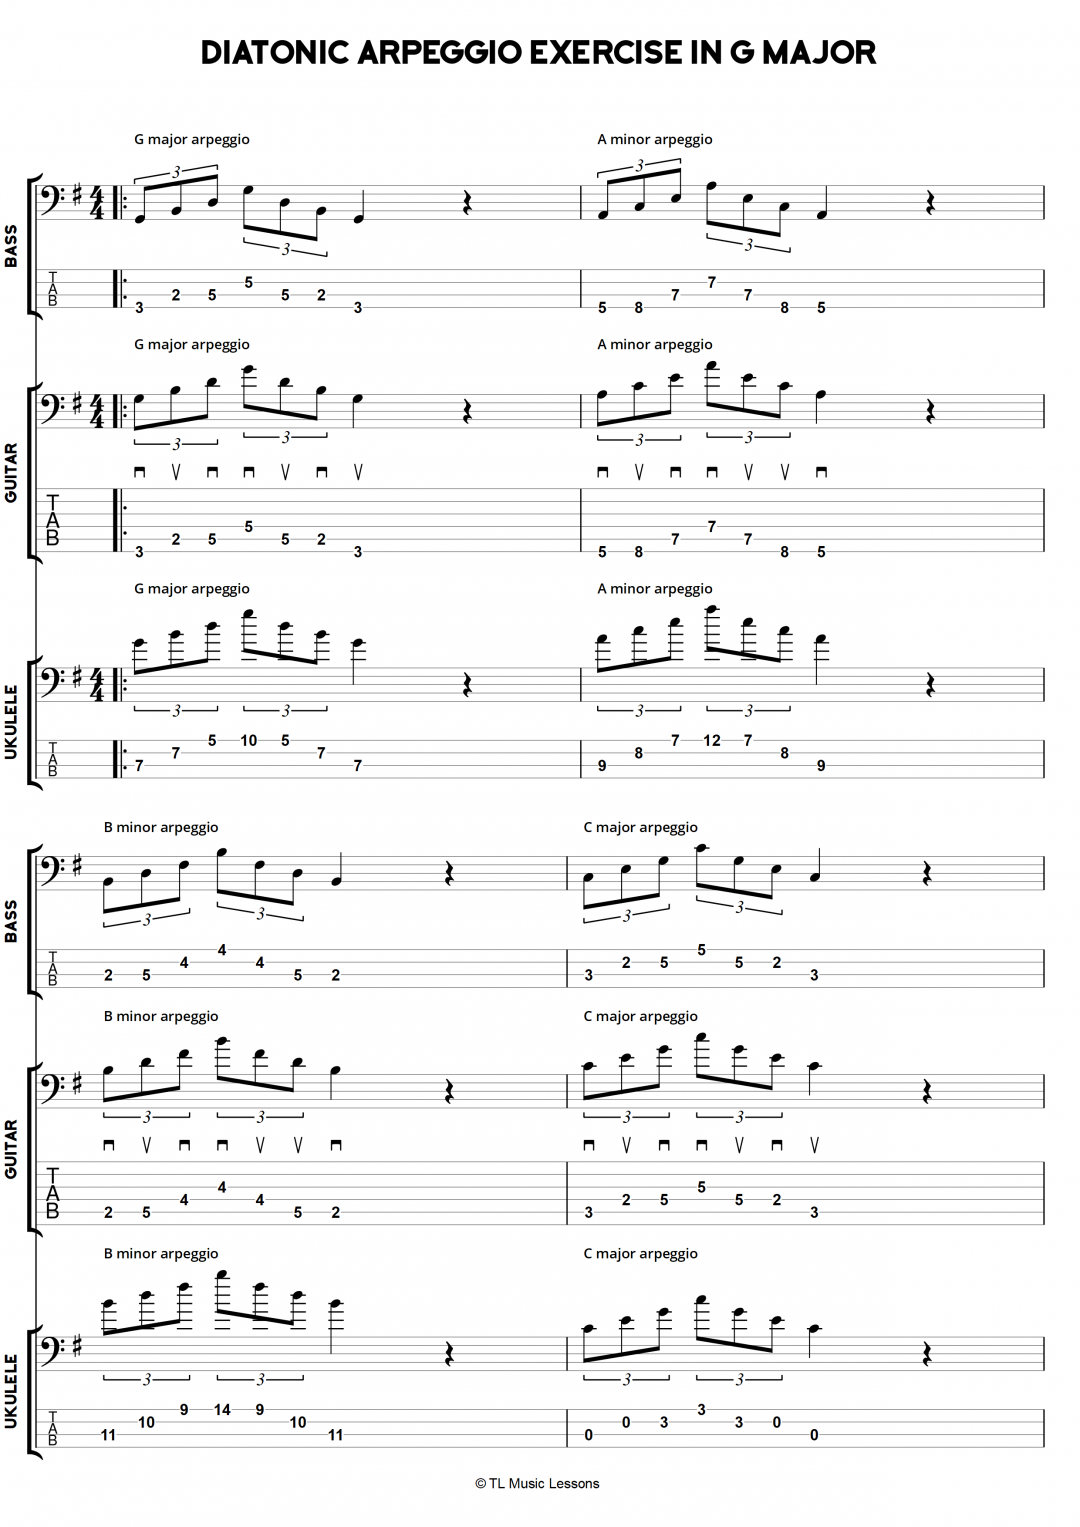 Diatonic Arpeggio Exercise in G Major